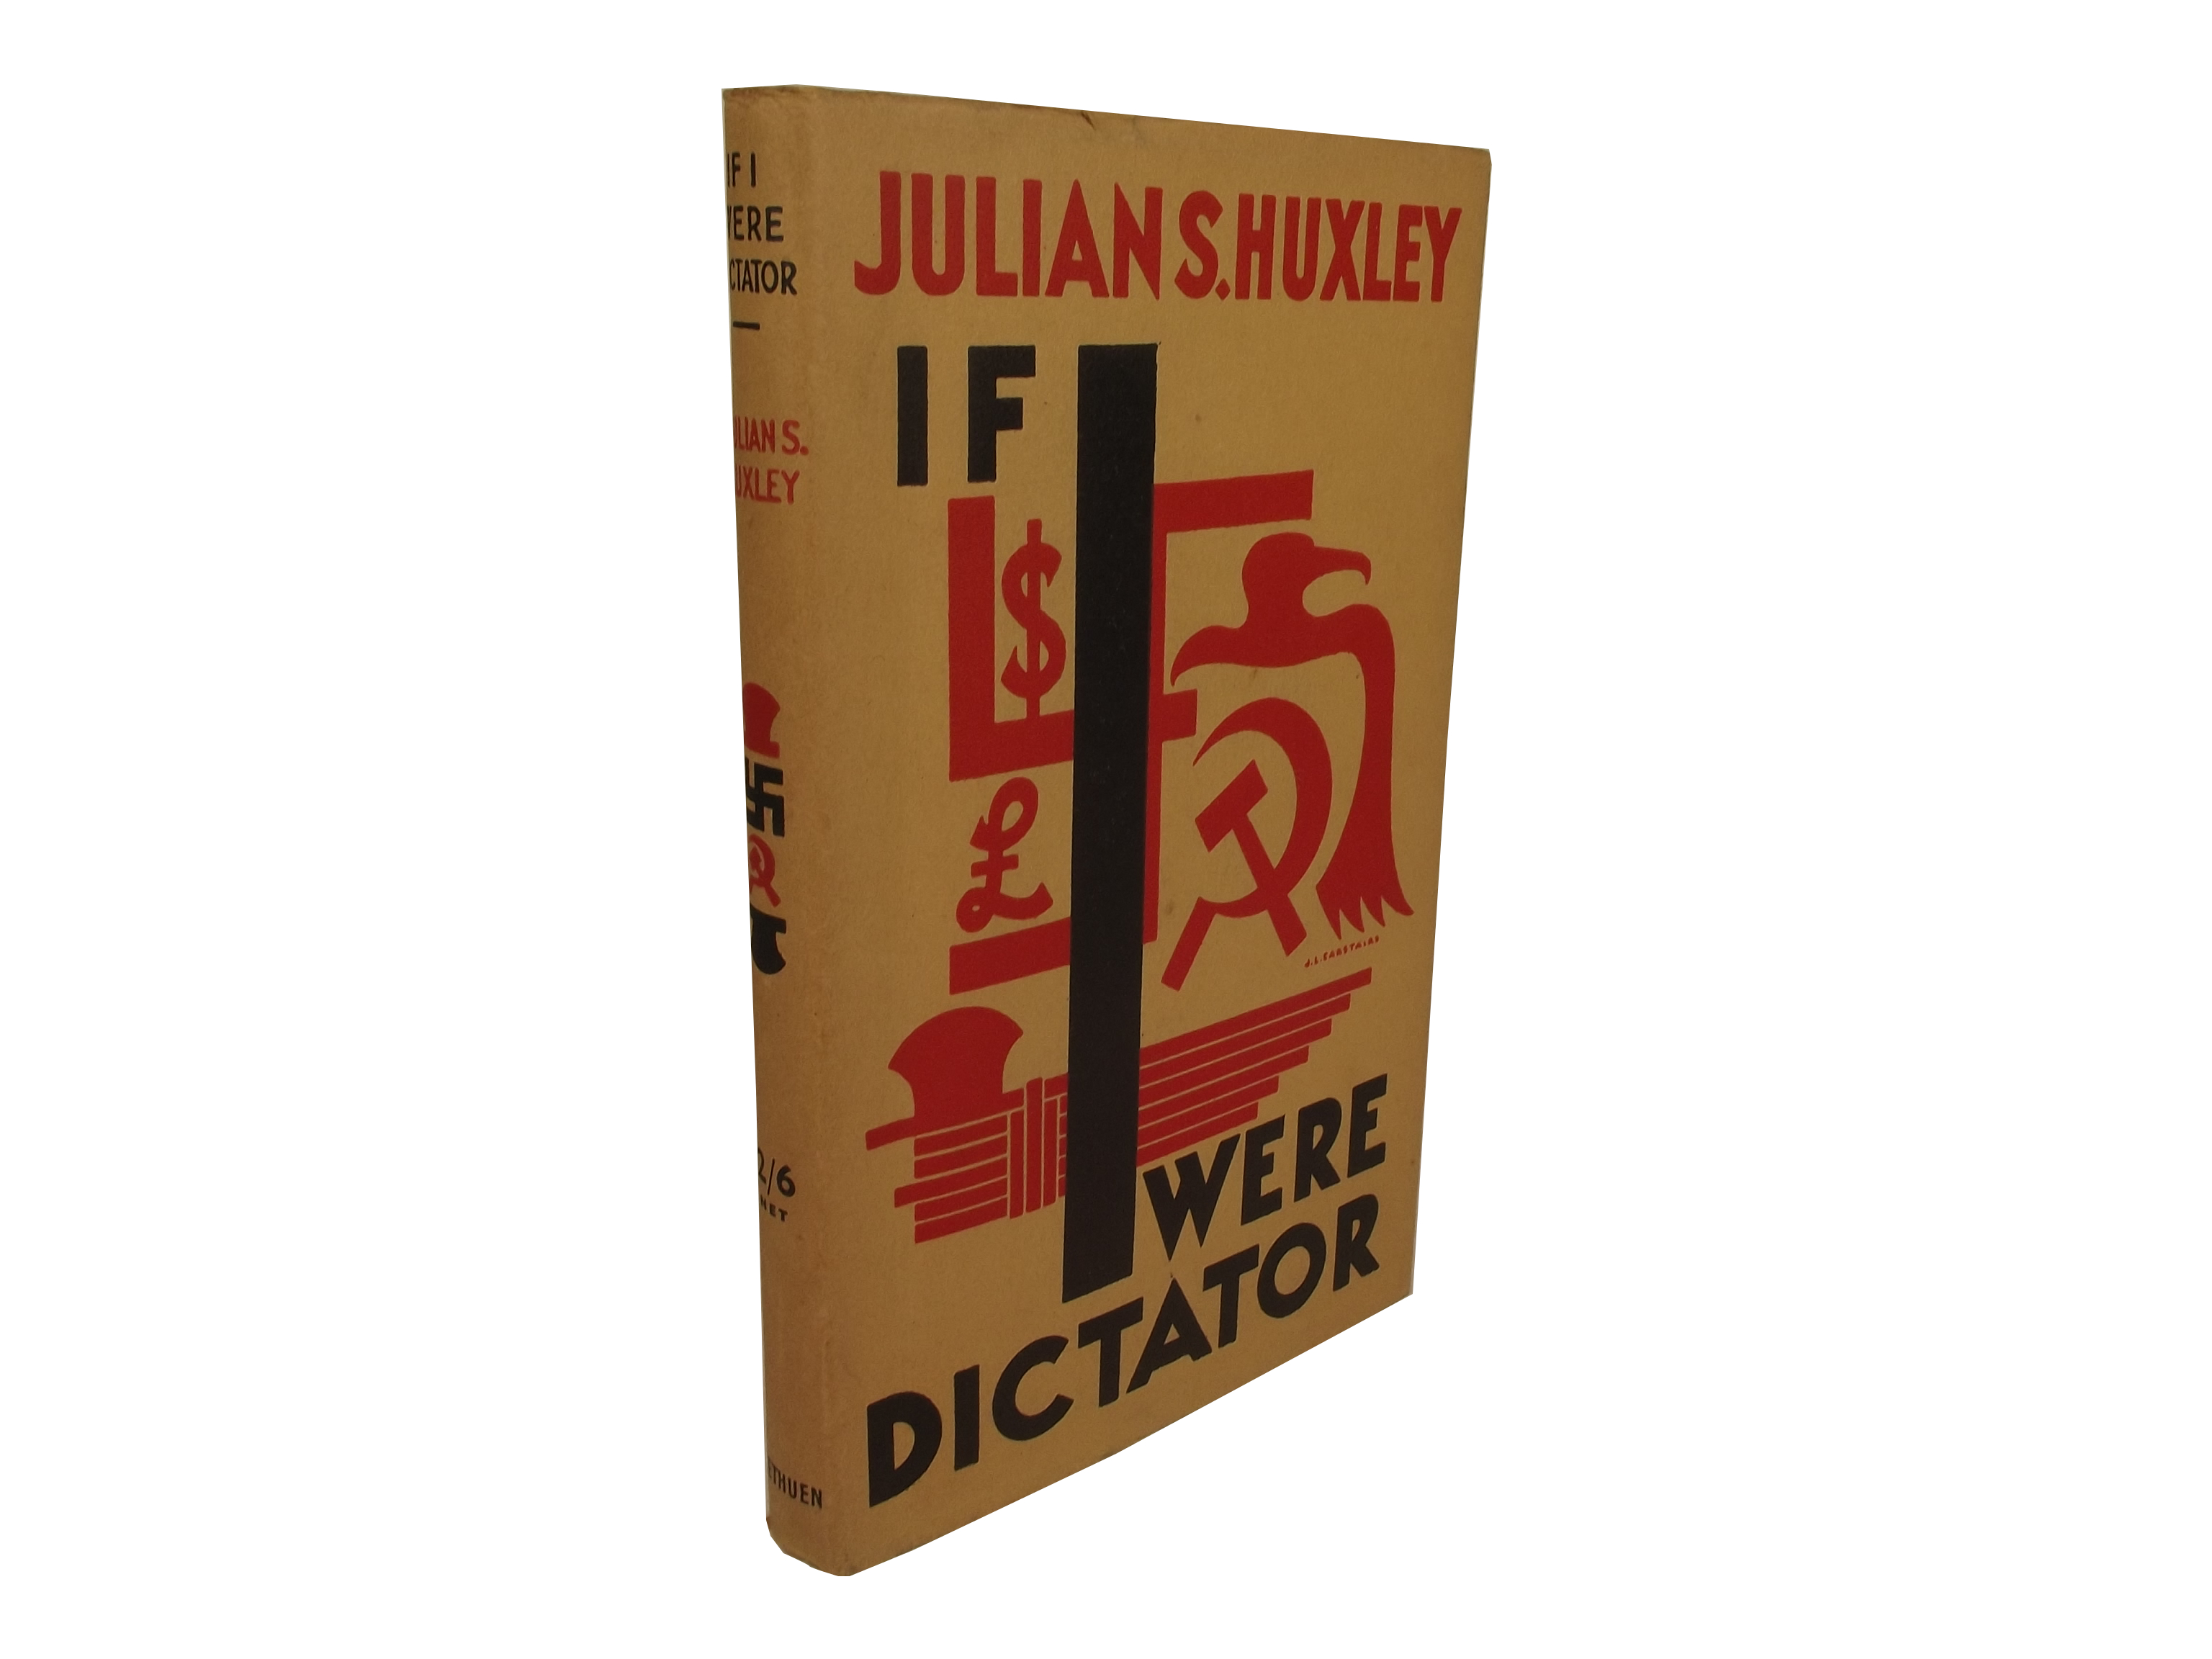 Huxley's If I Were Dictator book